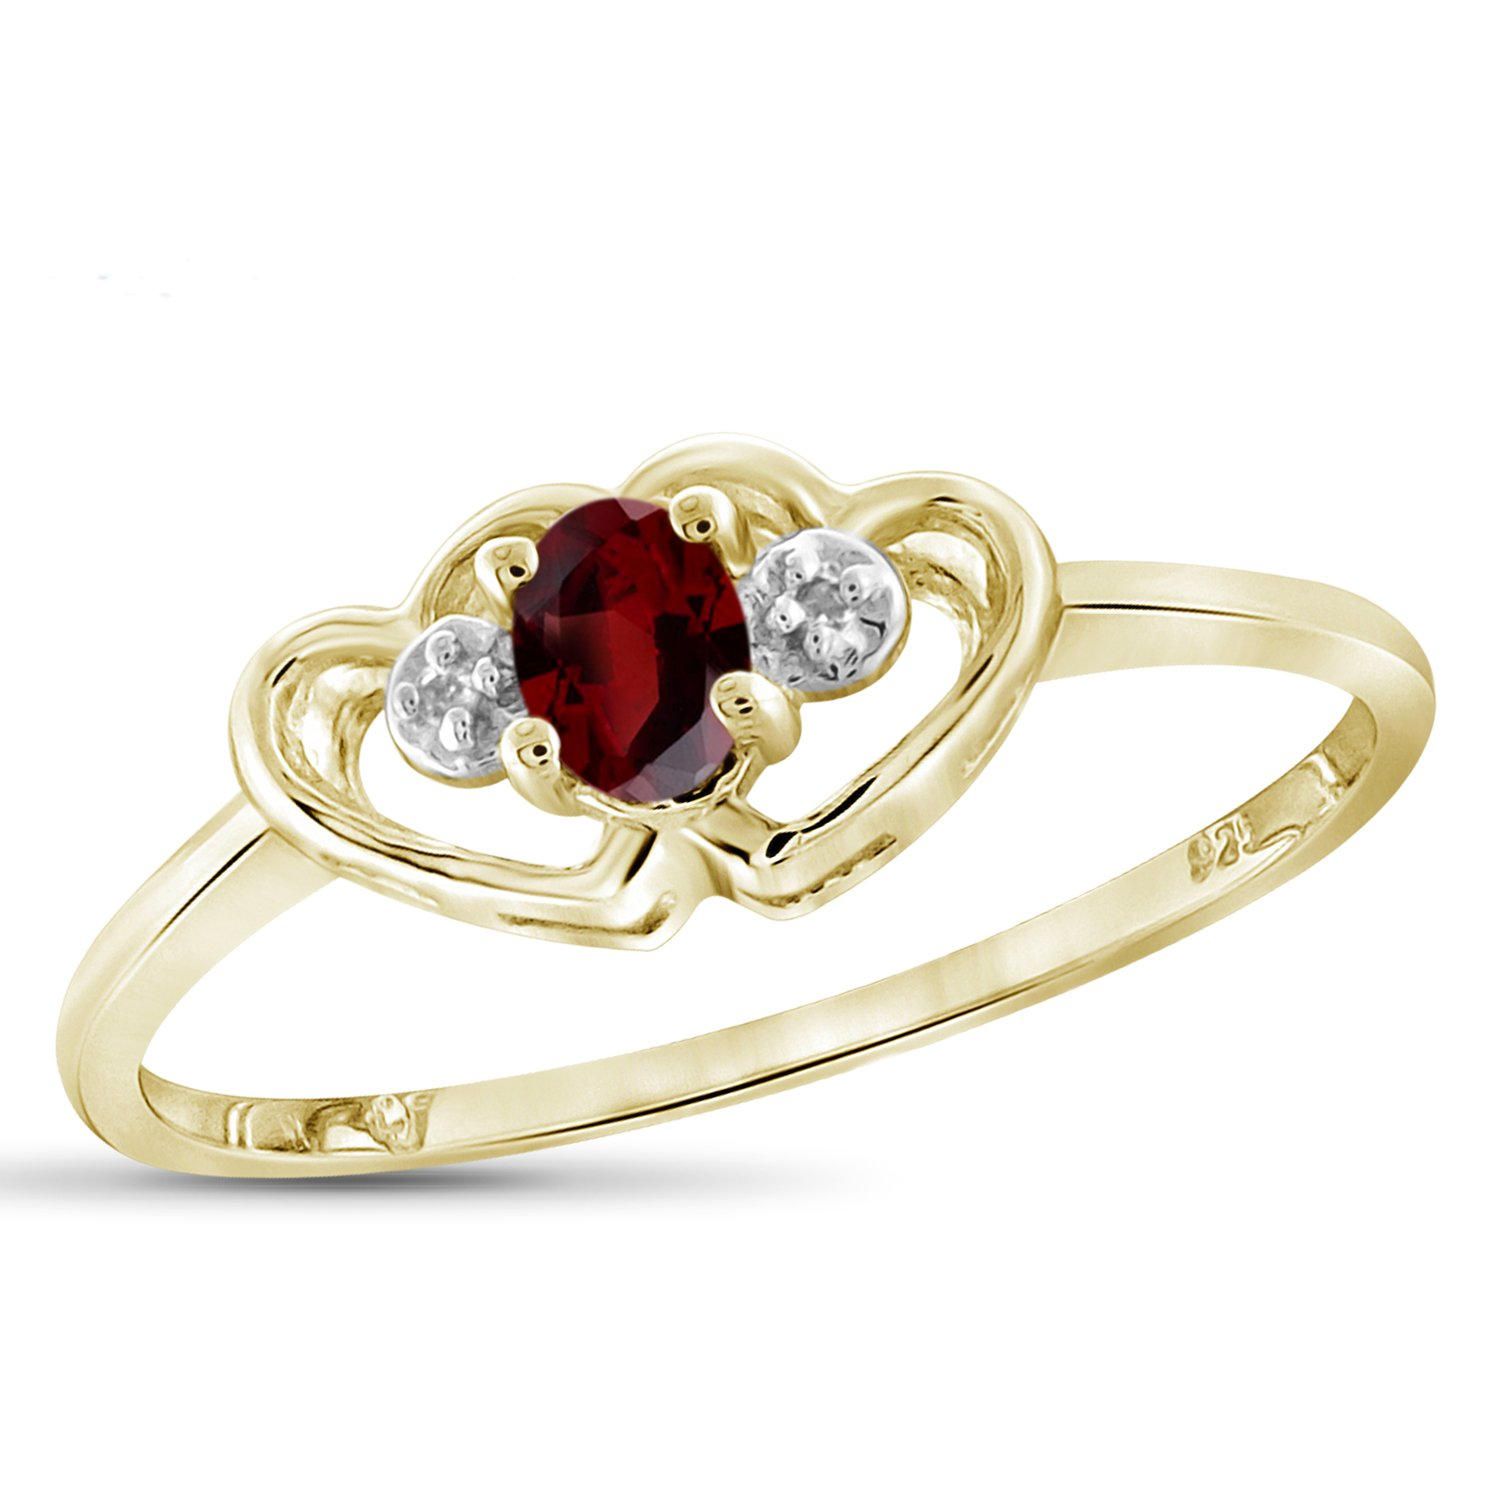 Garnet And White Diamond Accent 14kt Gold Over Silver Heart Ring 1 1//2 Carat T.G.W